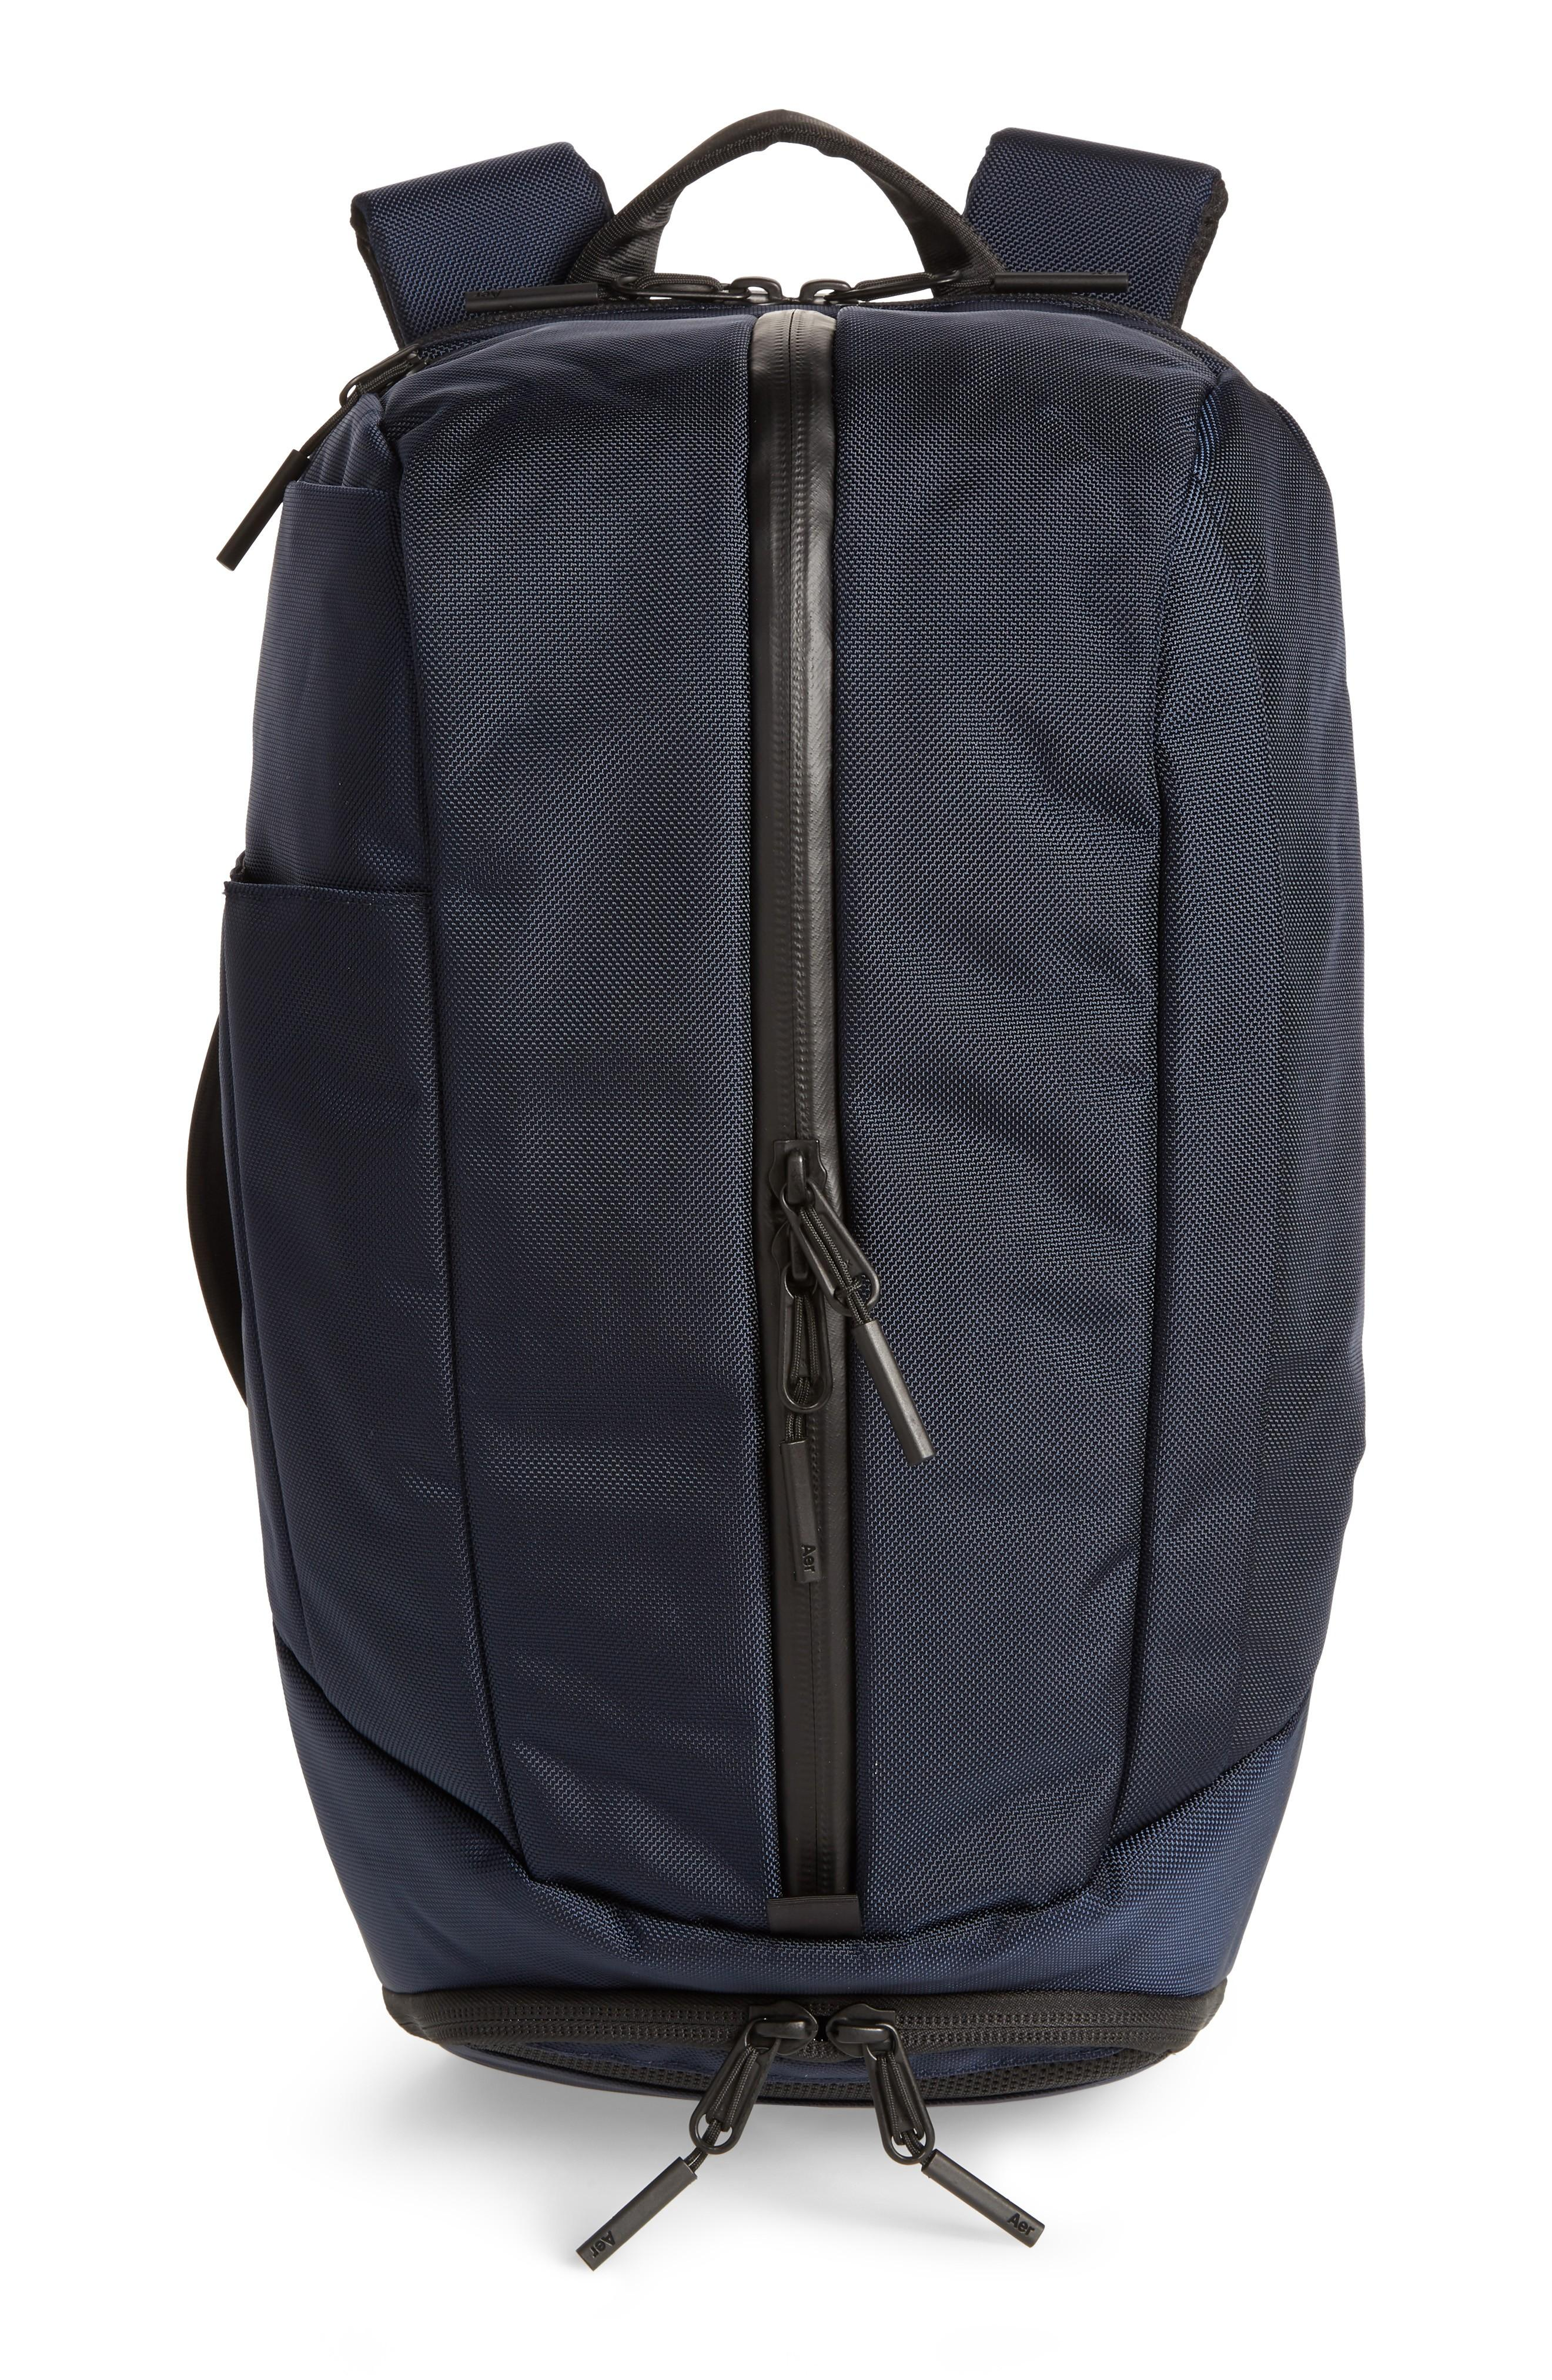 0c21cad2c748 Aer Duffel Pack 2 Convertible Backpack - Blue In Navy